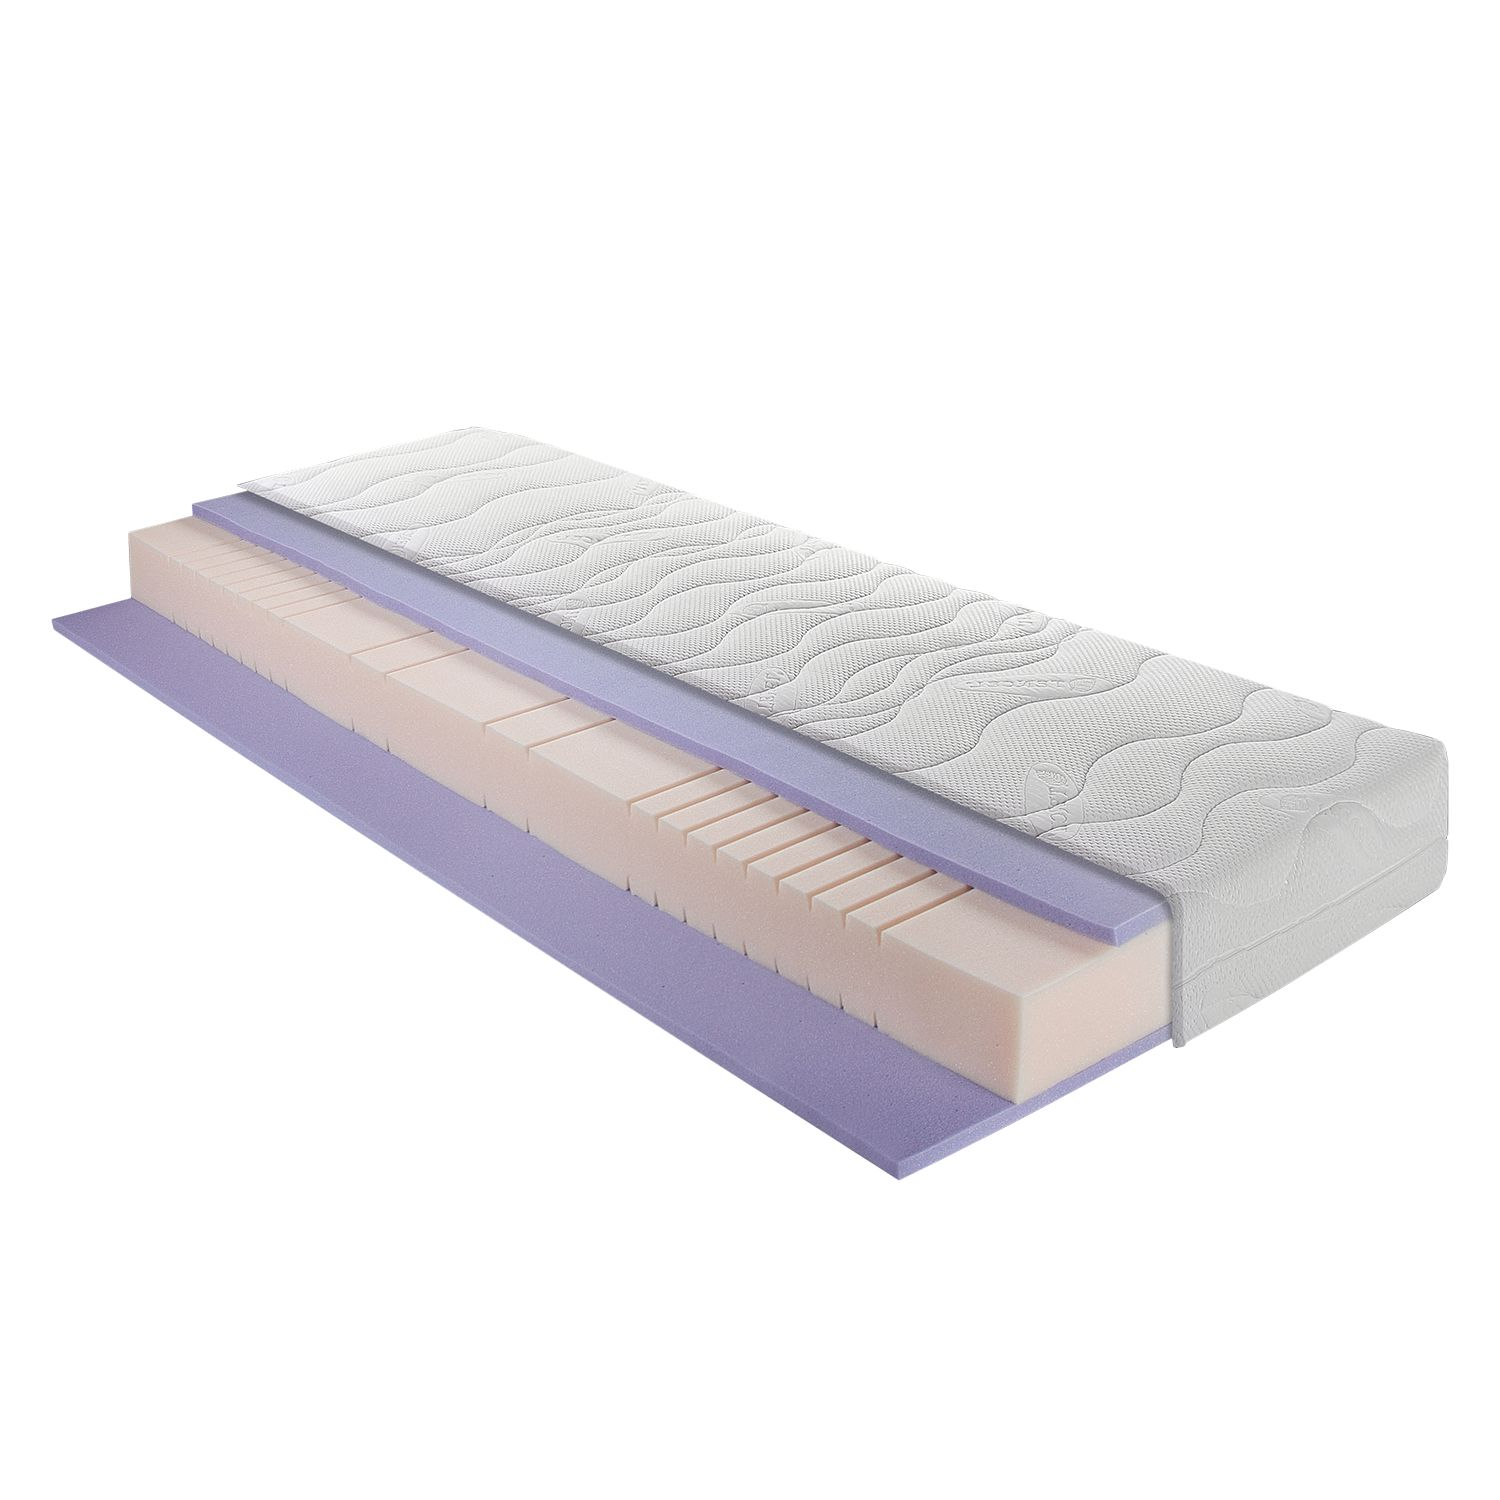 Materasso comfort a 7 zone in schiuma freddo e gel Sleep Gel Basic - 120 x 200cm - H3 da 80 kg, Breckle